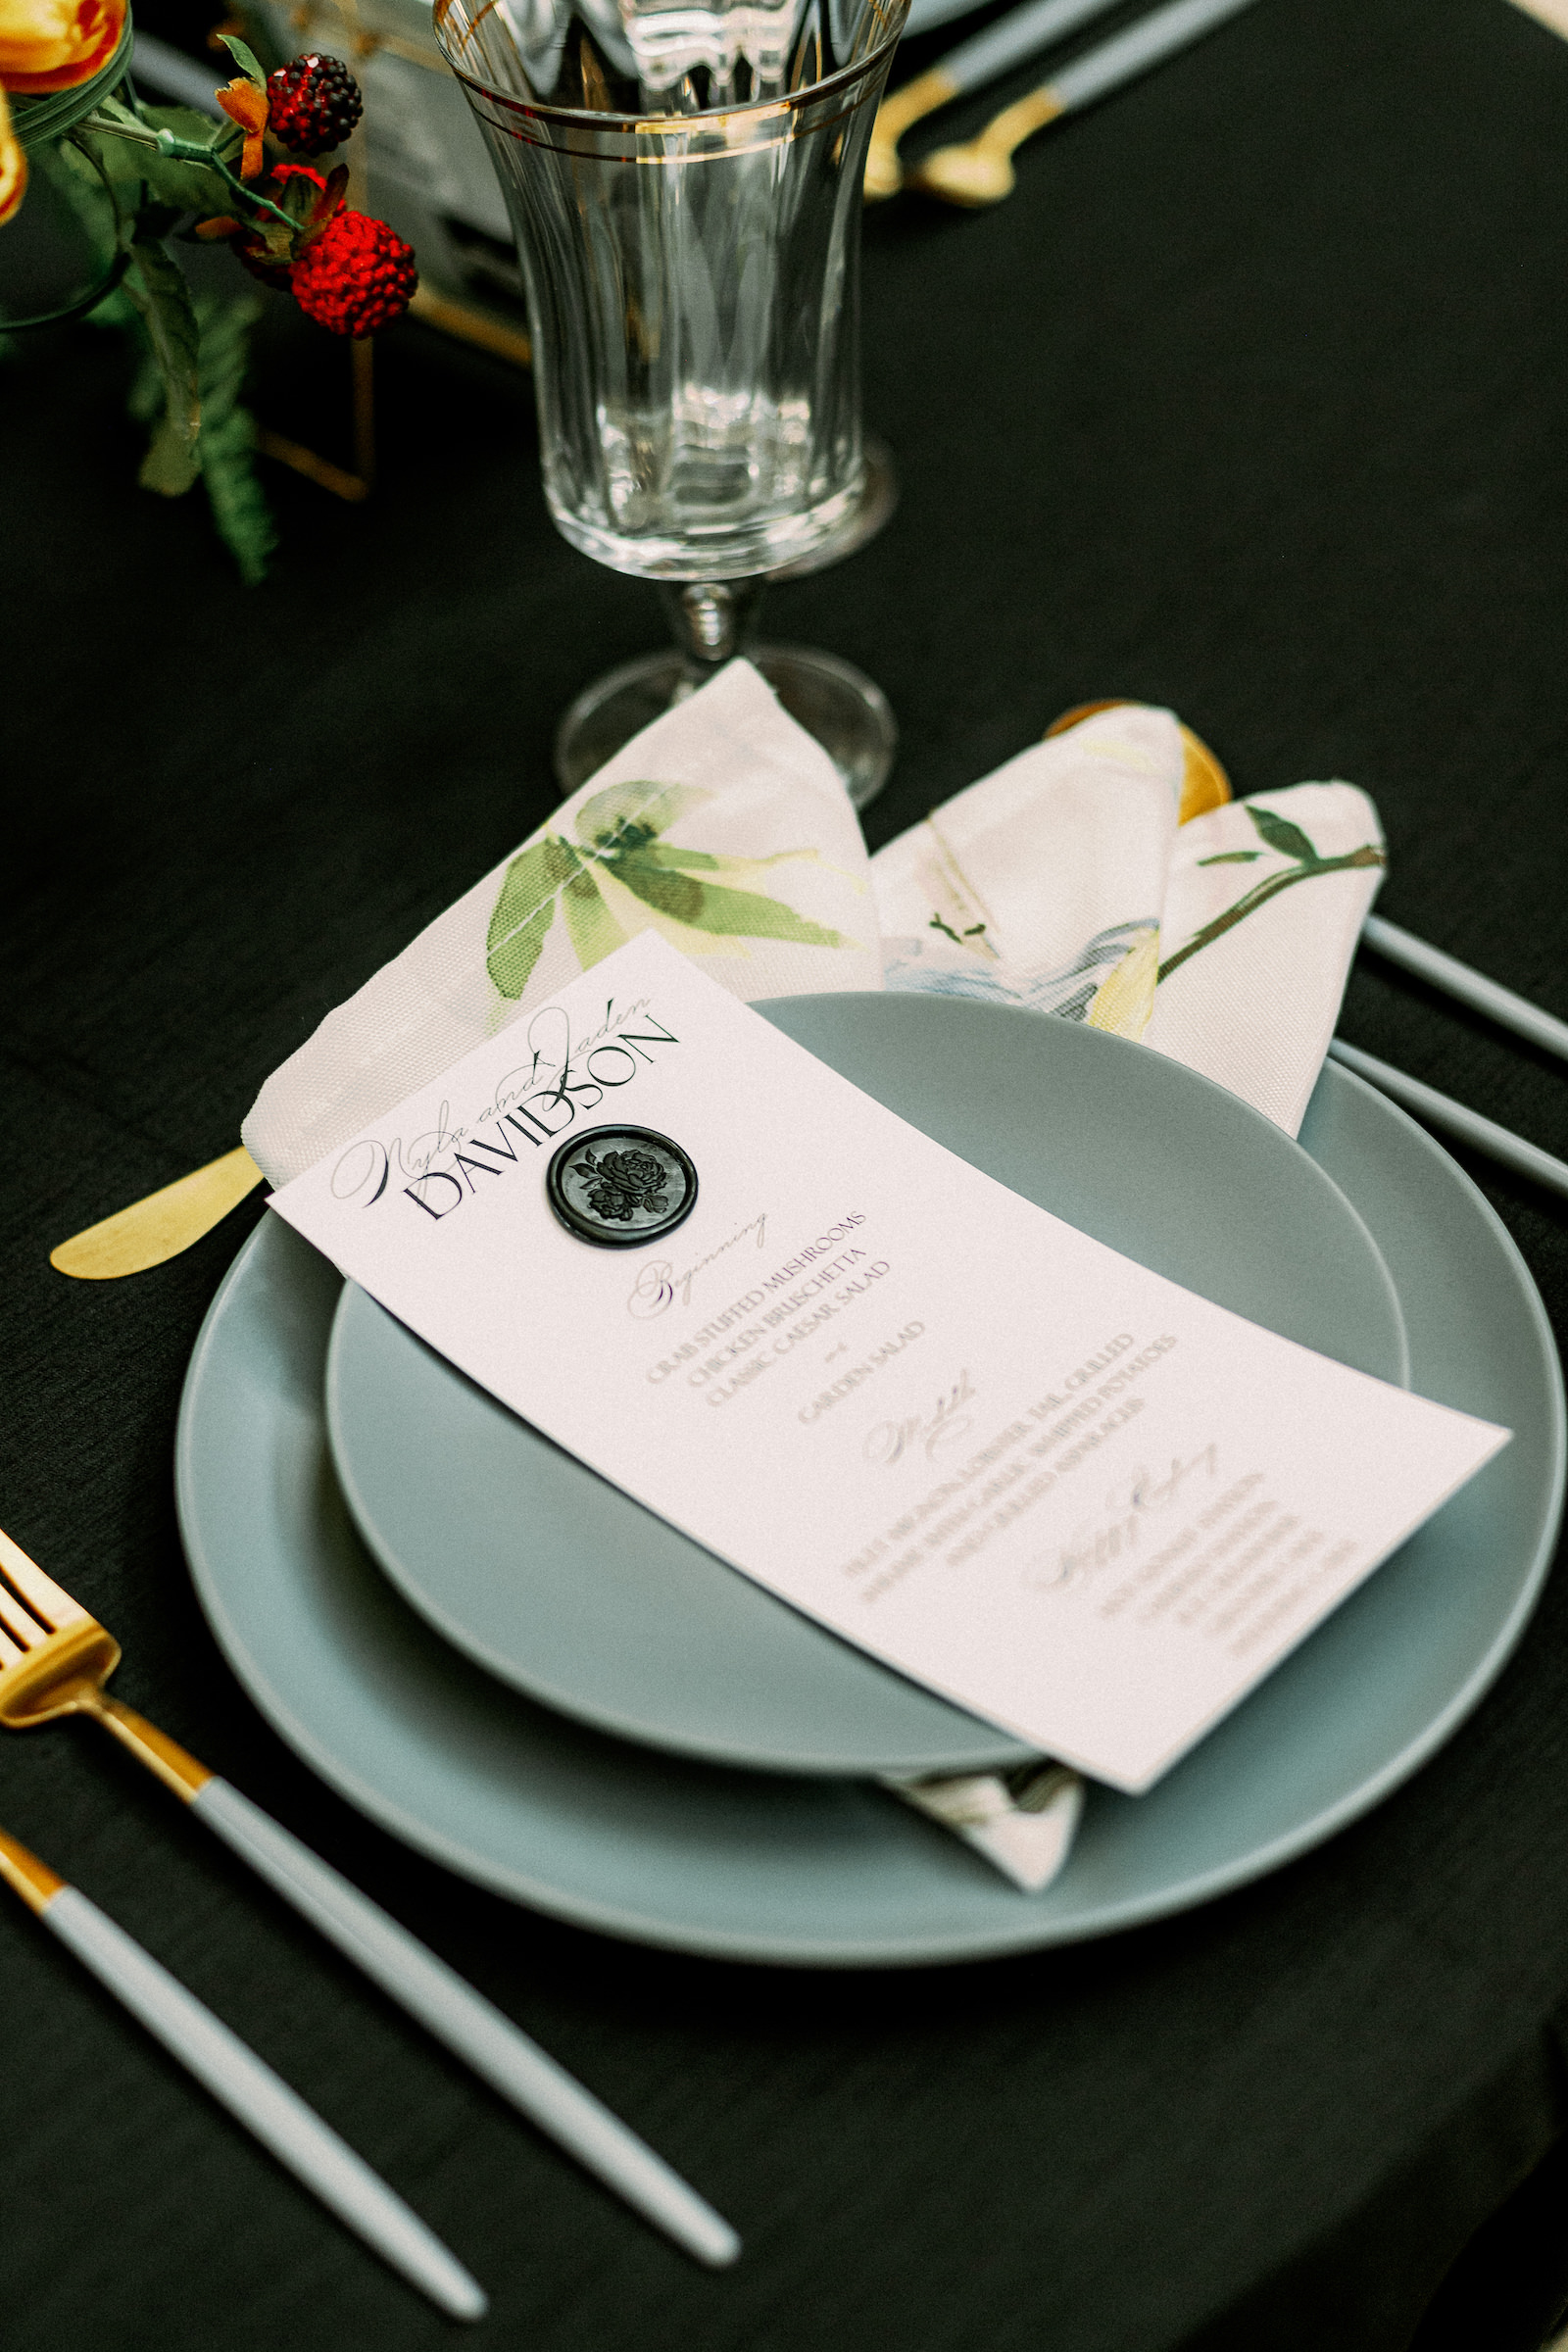 Wedding Menu Card with Wax Seal   Wedding Reception Table with Black Linens and Grey Plates and Gold Flatware and Glassware by Kate Ryan Event Rentals   Black and Burgundy Maroon and Gold Wedding   Winsor Event Studio